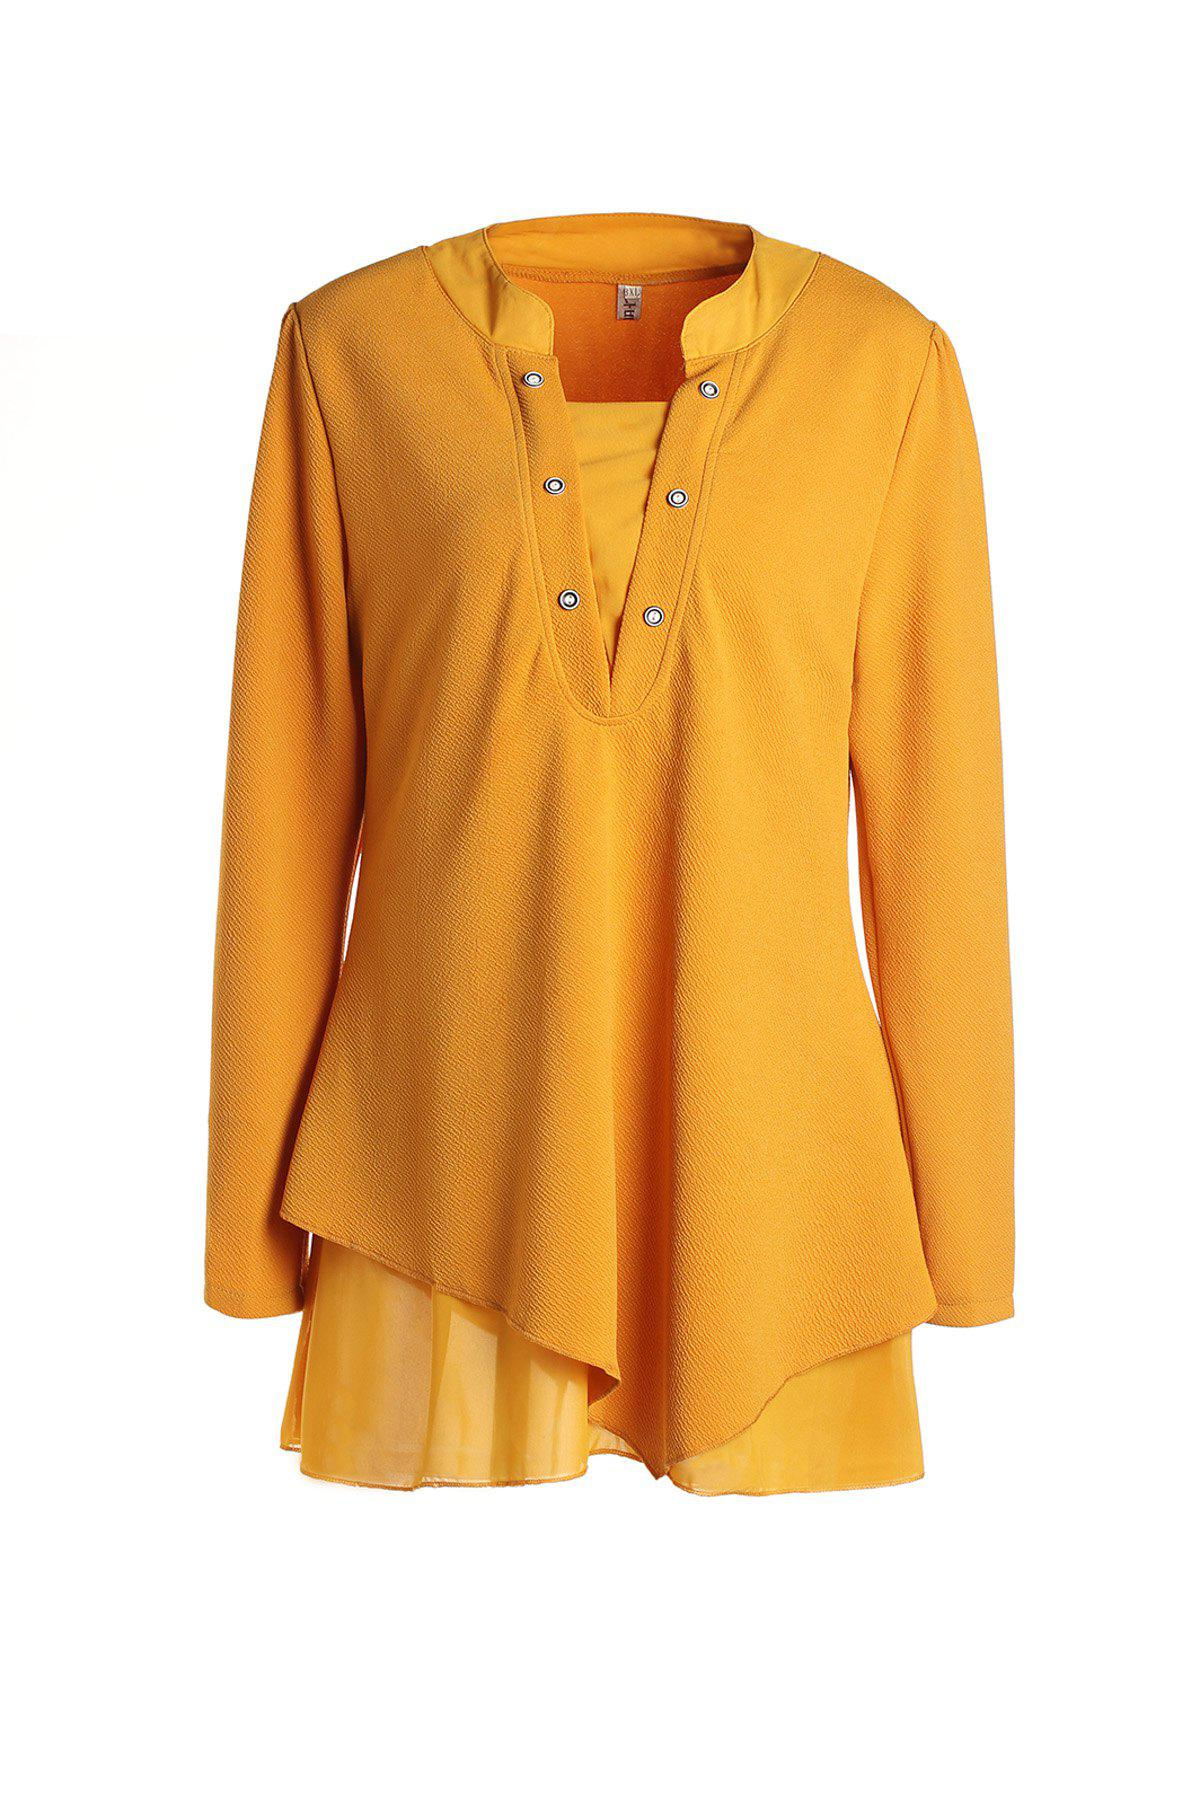 Graceful Long Sleeve Round Collar Women's Red Blouse - YELLOW L